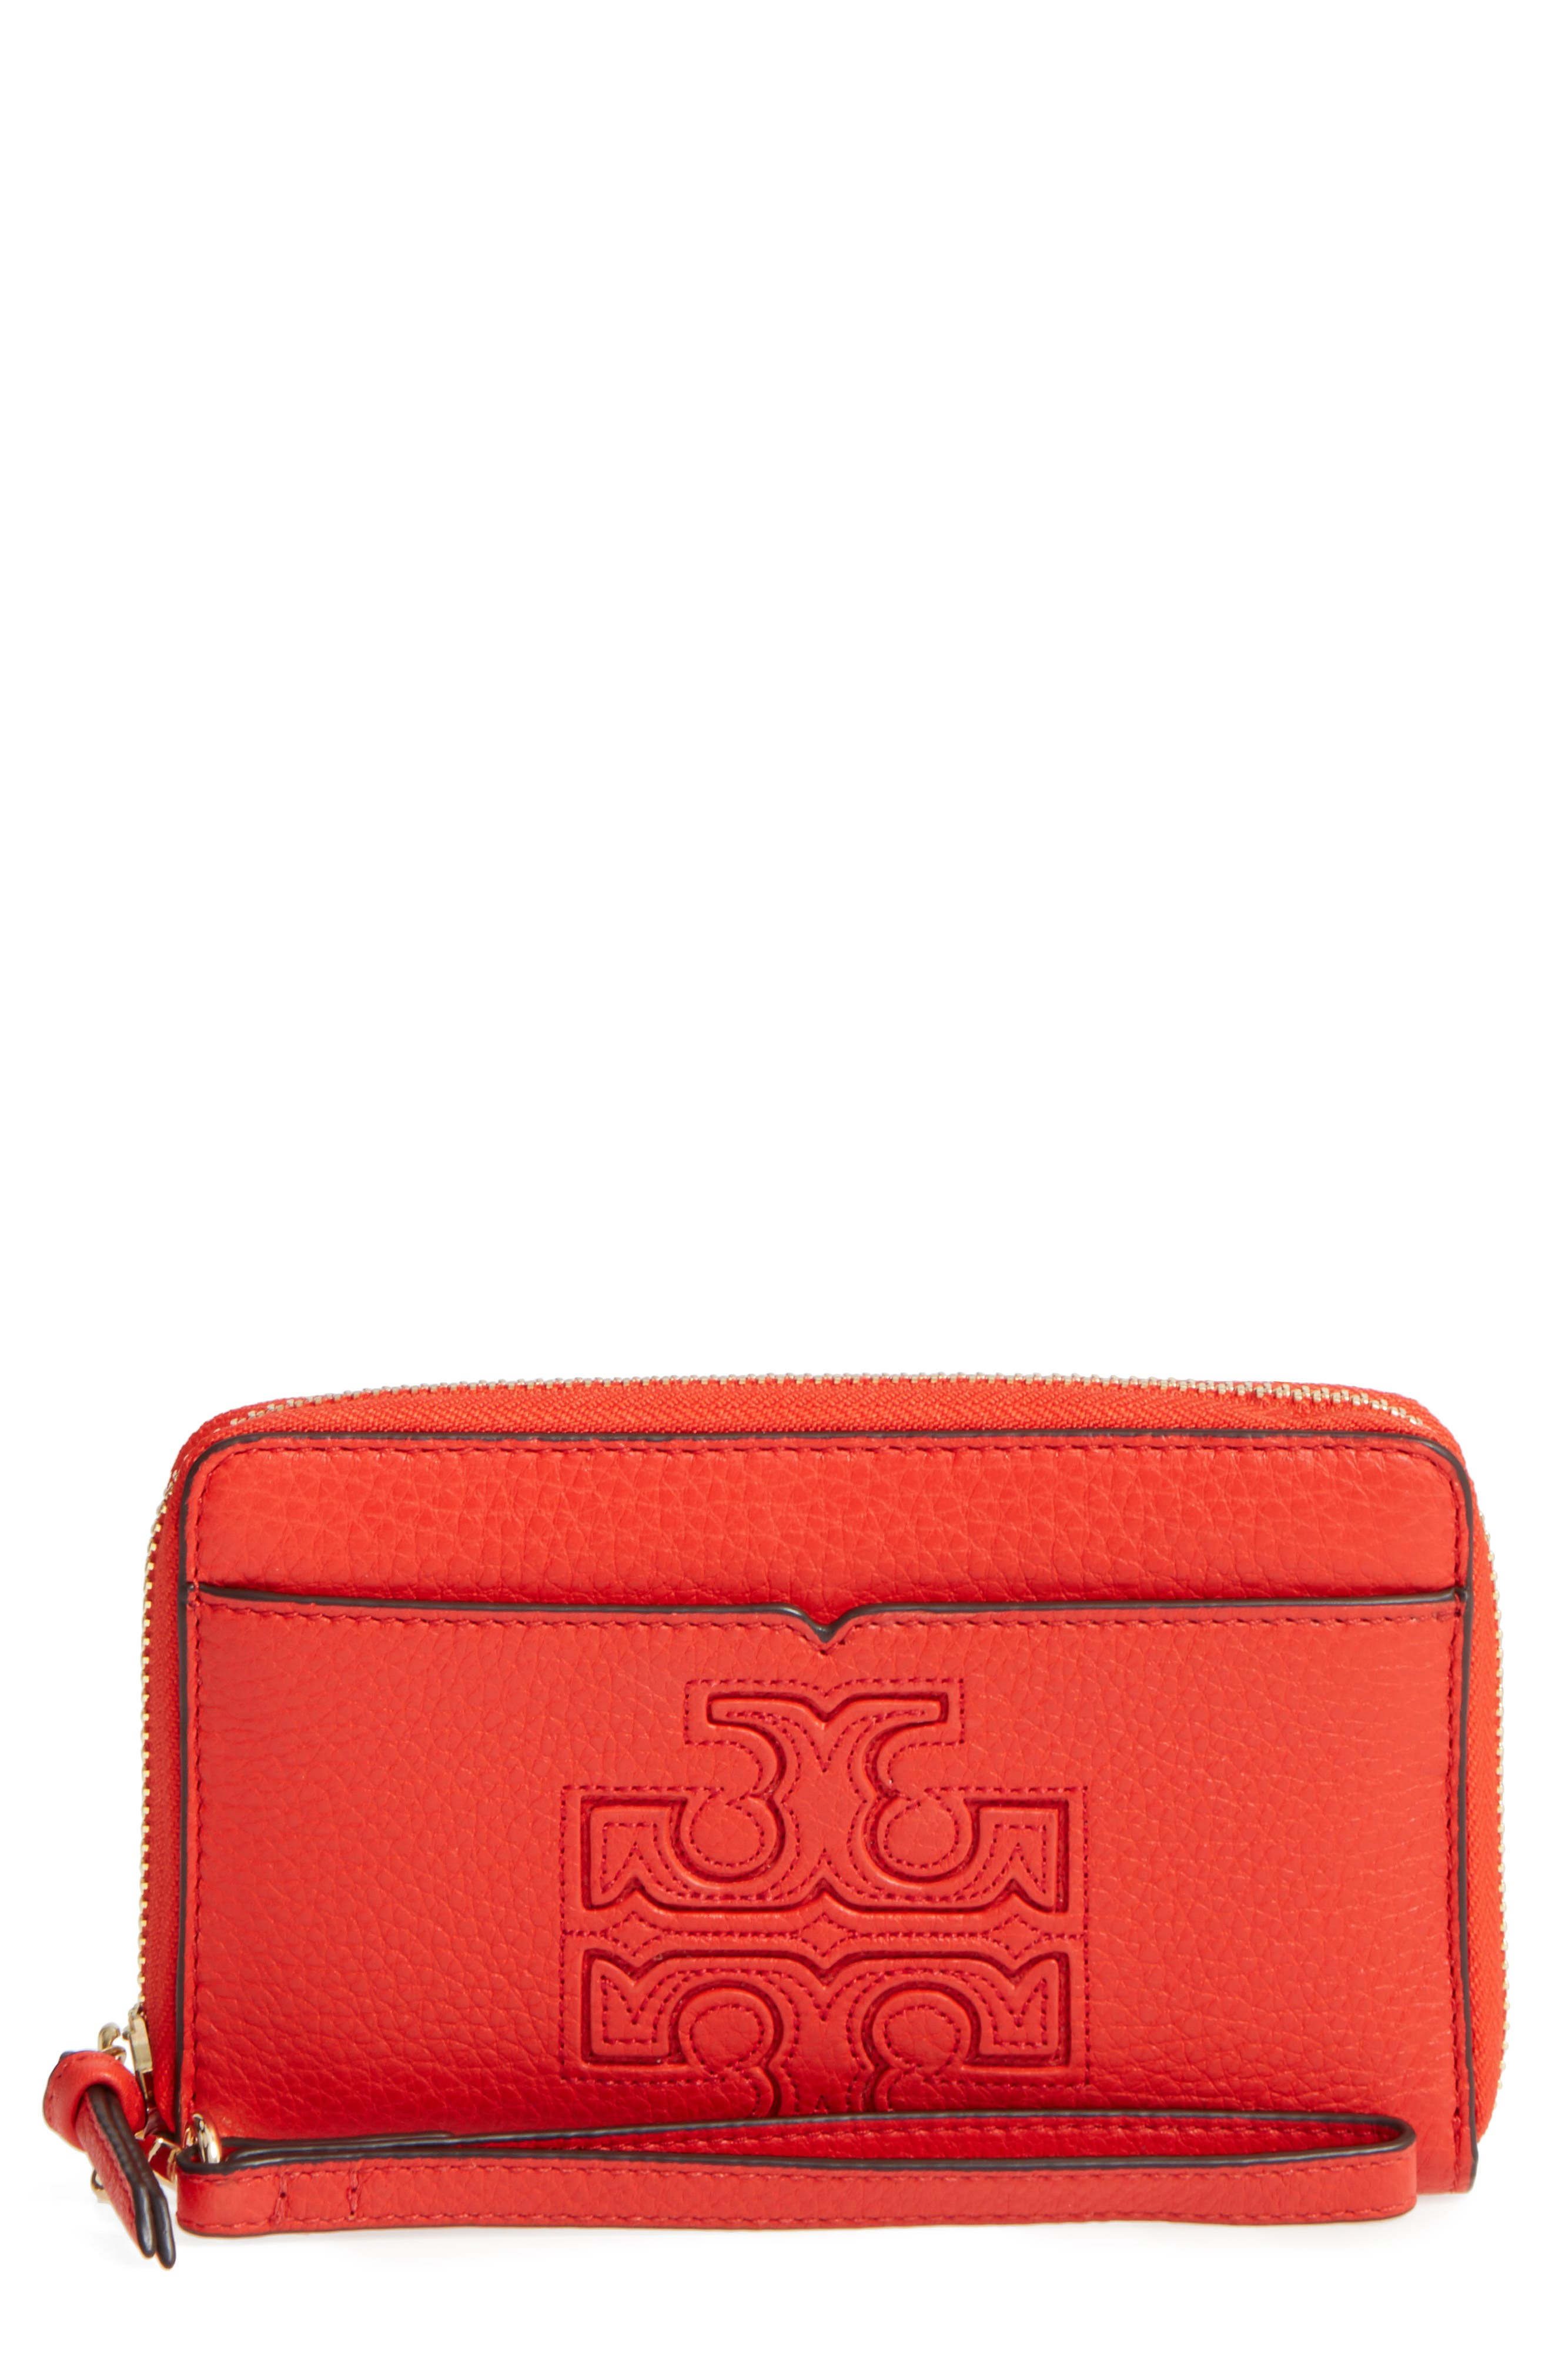 Alternate Image 1 Selected - Tory Burch Harper Leather iPhone 6/6s Wristlet